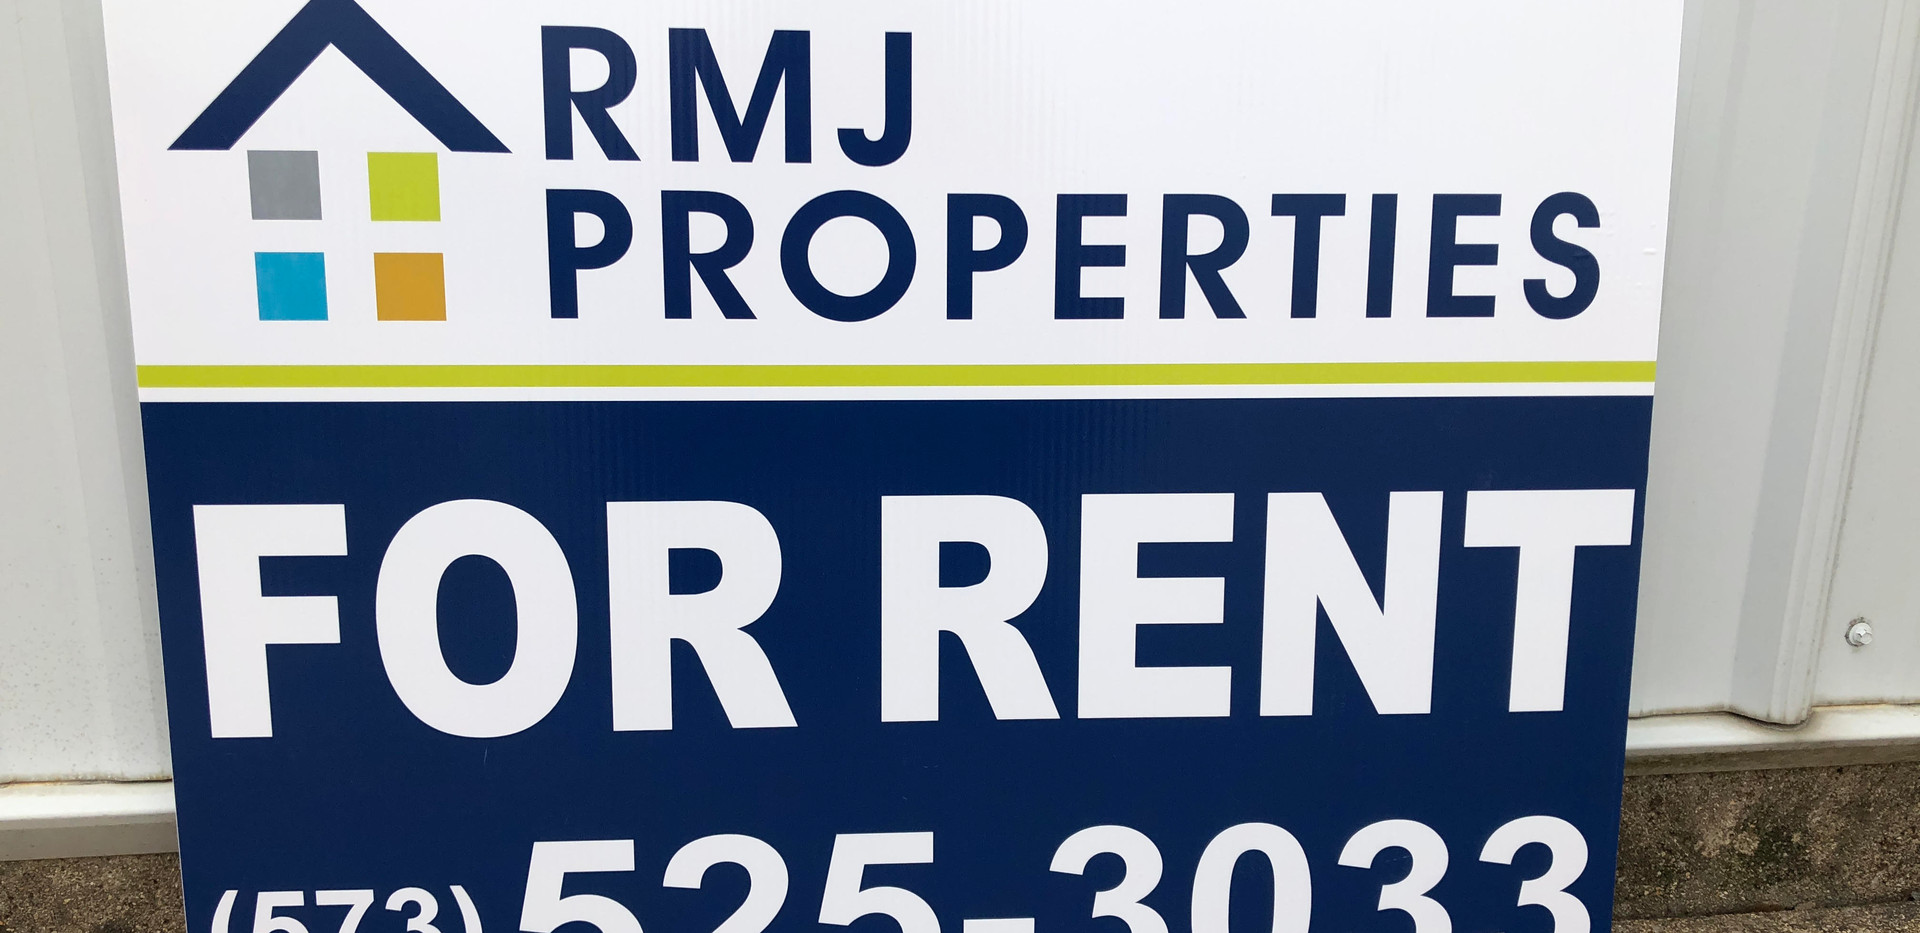 Realestate Yard Sign